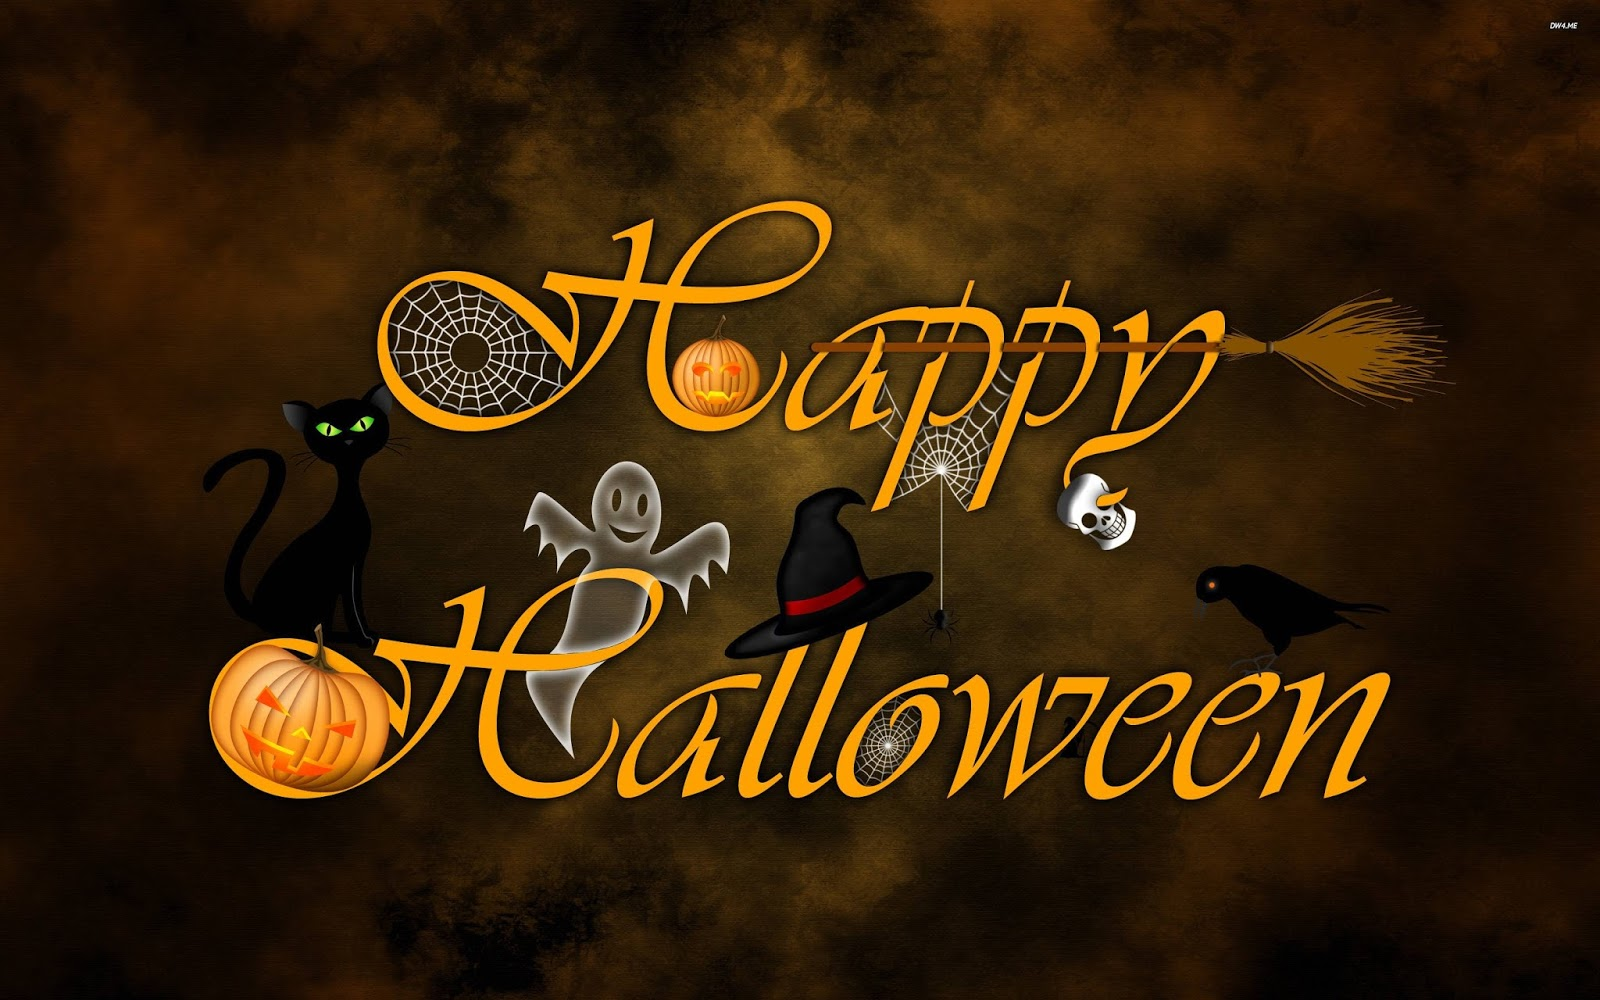 Happy Halloween 2017 images background wallpaper posters | Happy ...